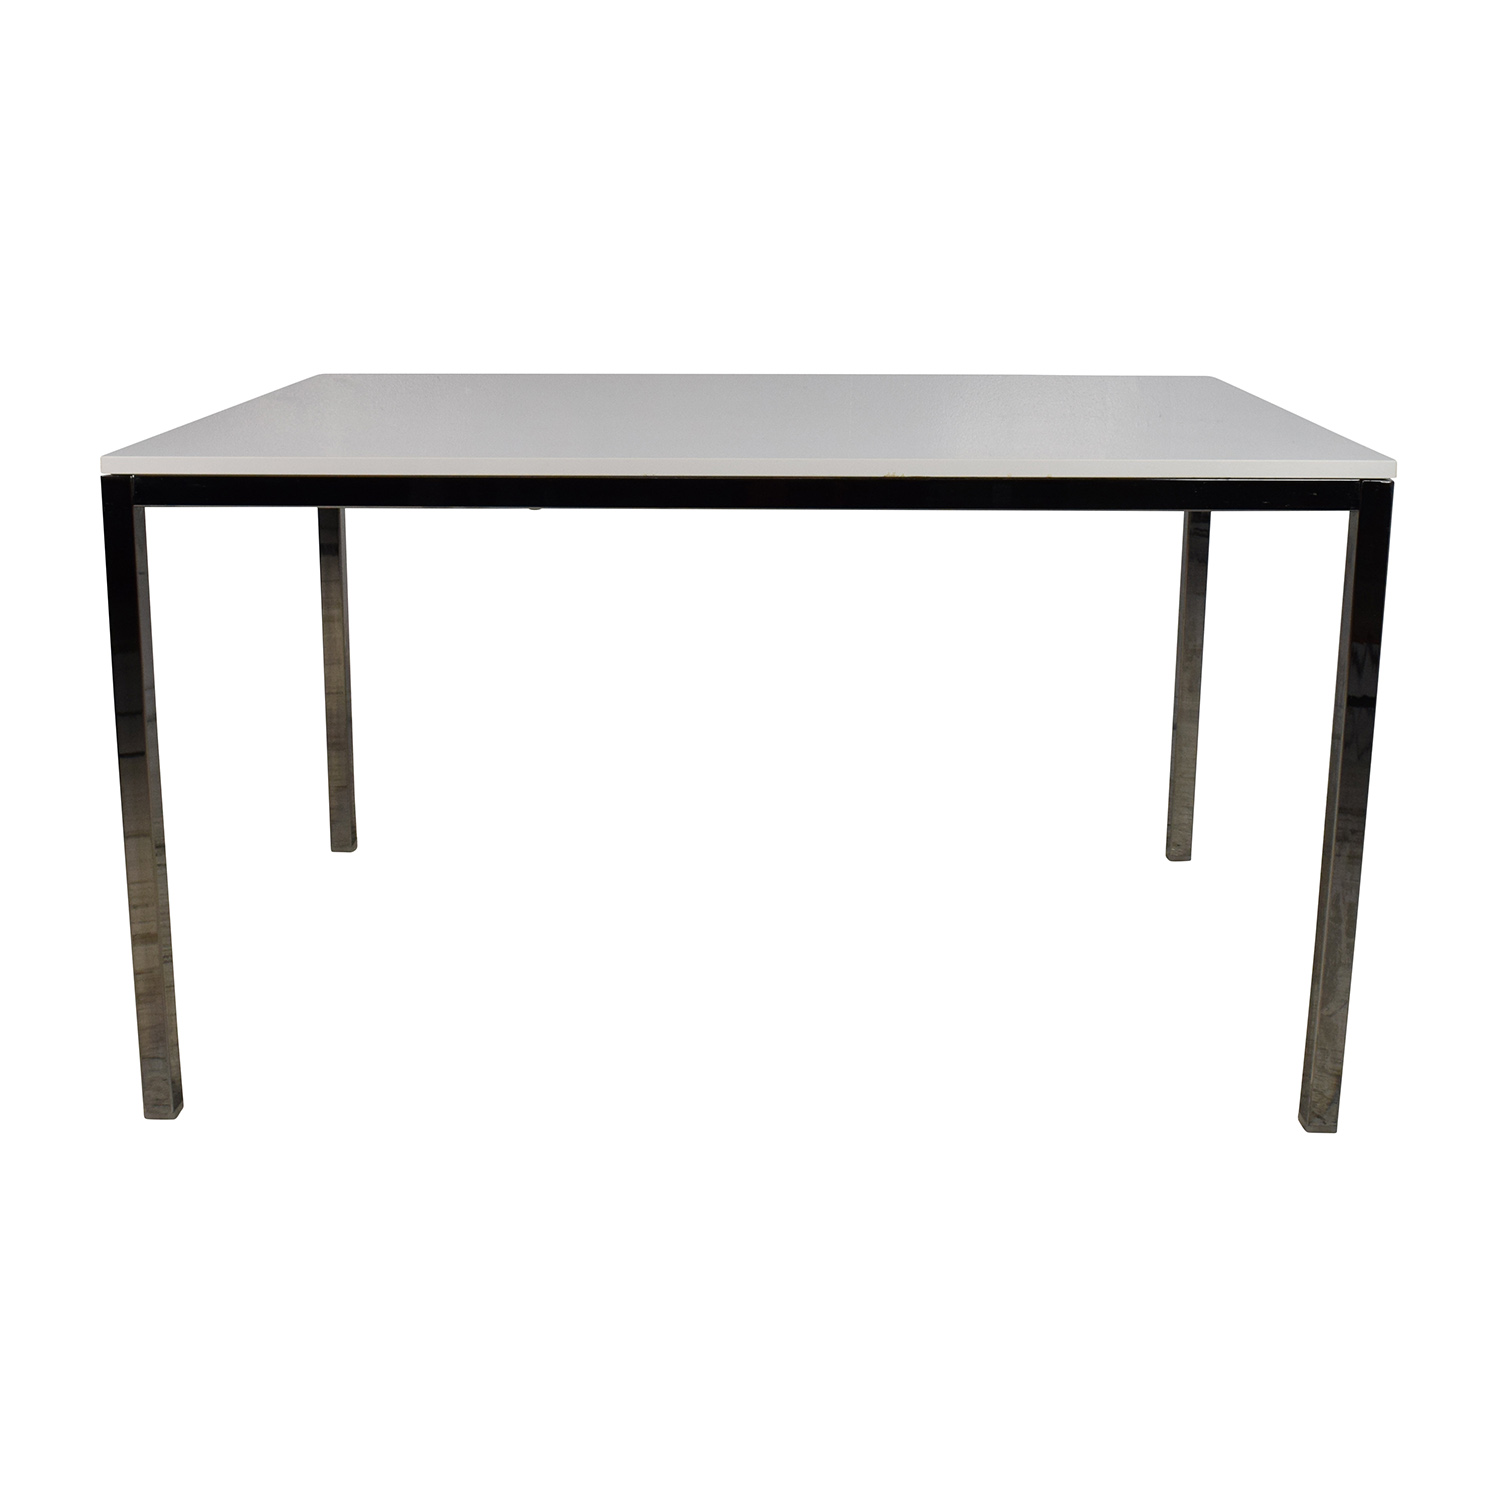 Ikea Dining Table 57 Off Ikea Ikea White Top Dining Table With Silver Chrome Legs Tables